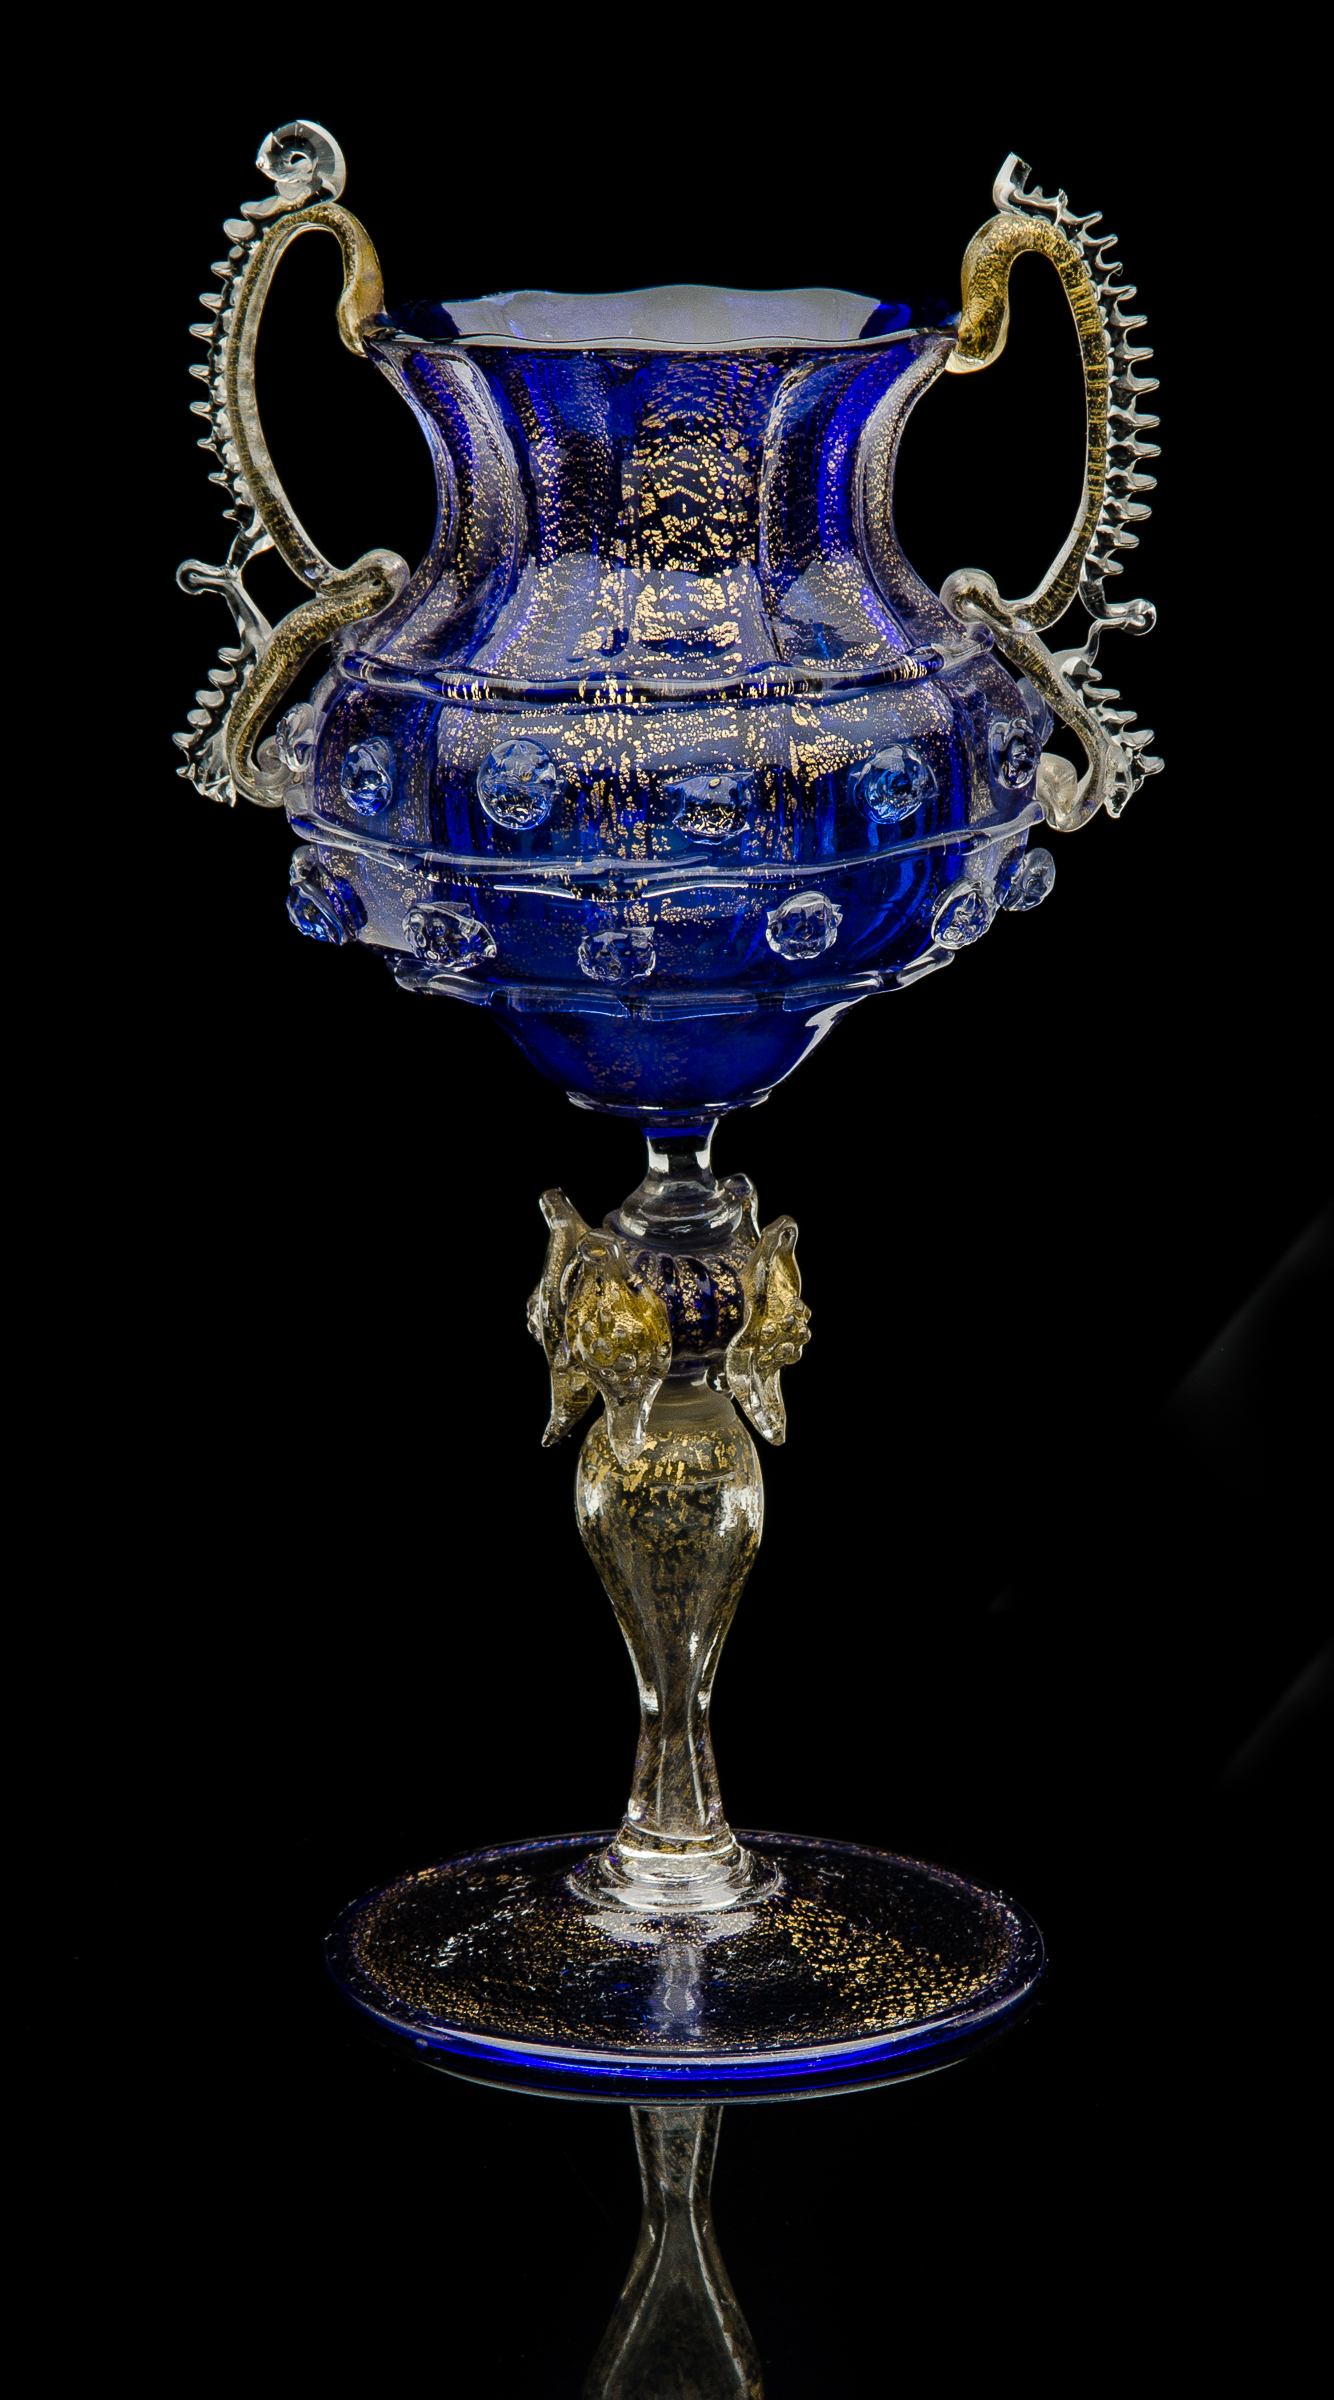 Fratelli Toso,  Cobalt Blue Double Handled Vase with Aventurine  (1885, glass, 7.5 inches), VV.209